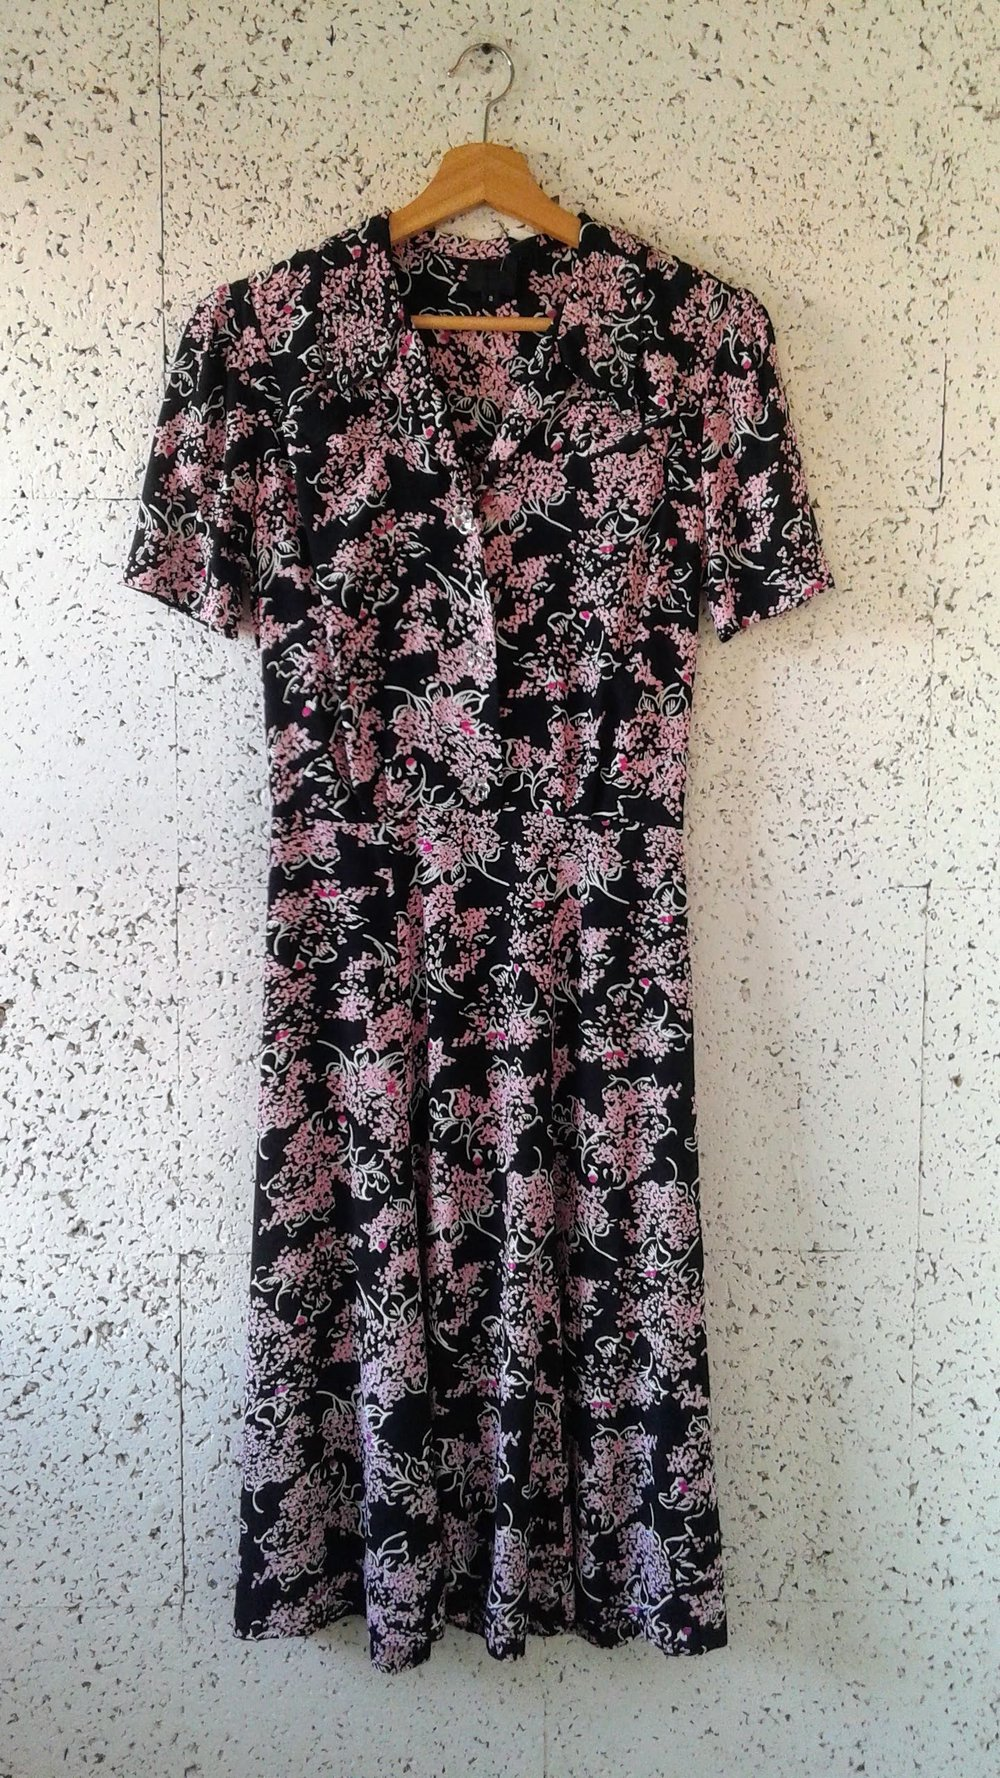 Anna Sui dress; Size S, $62